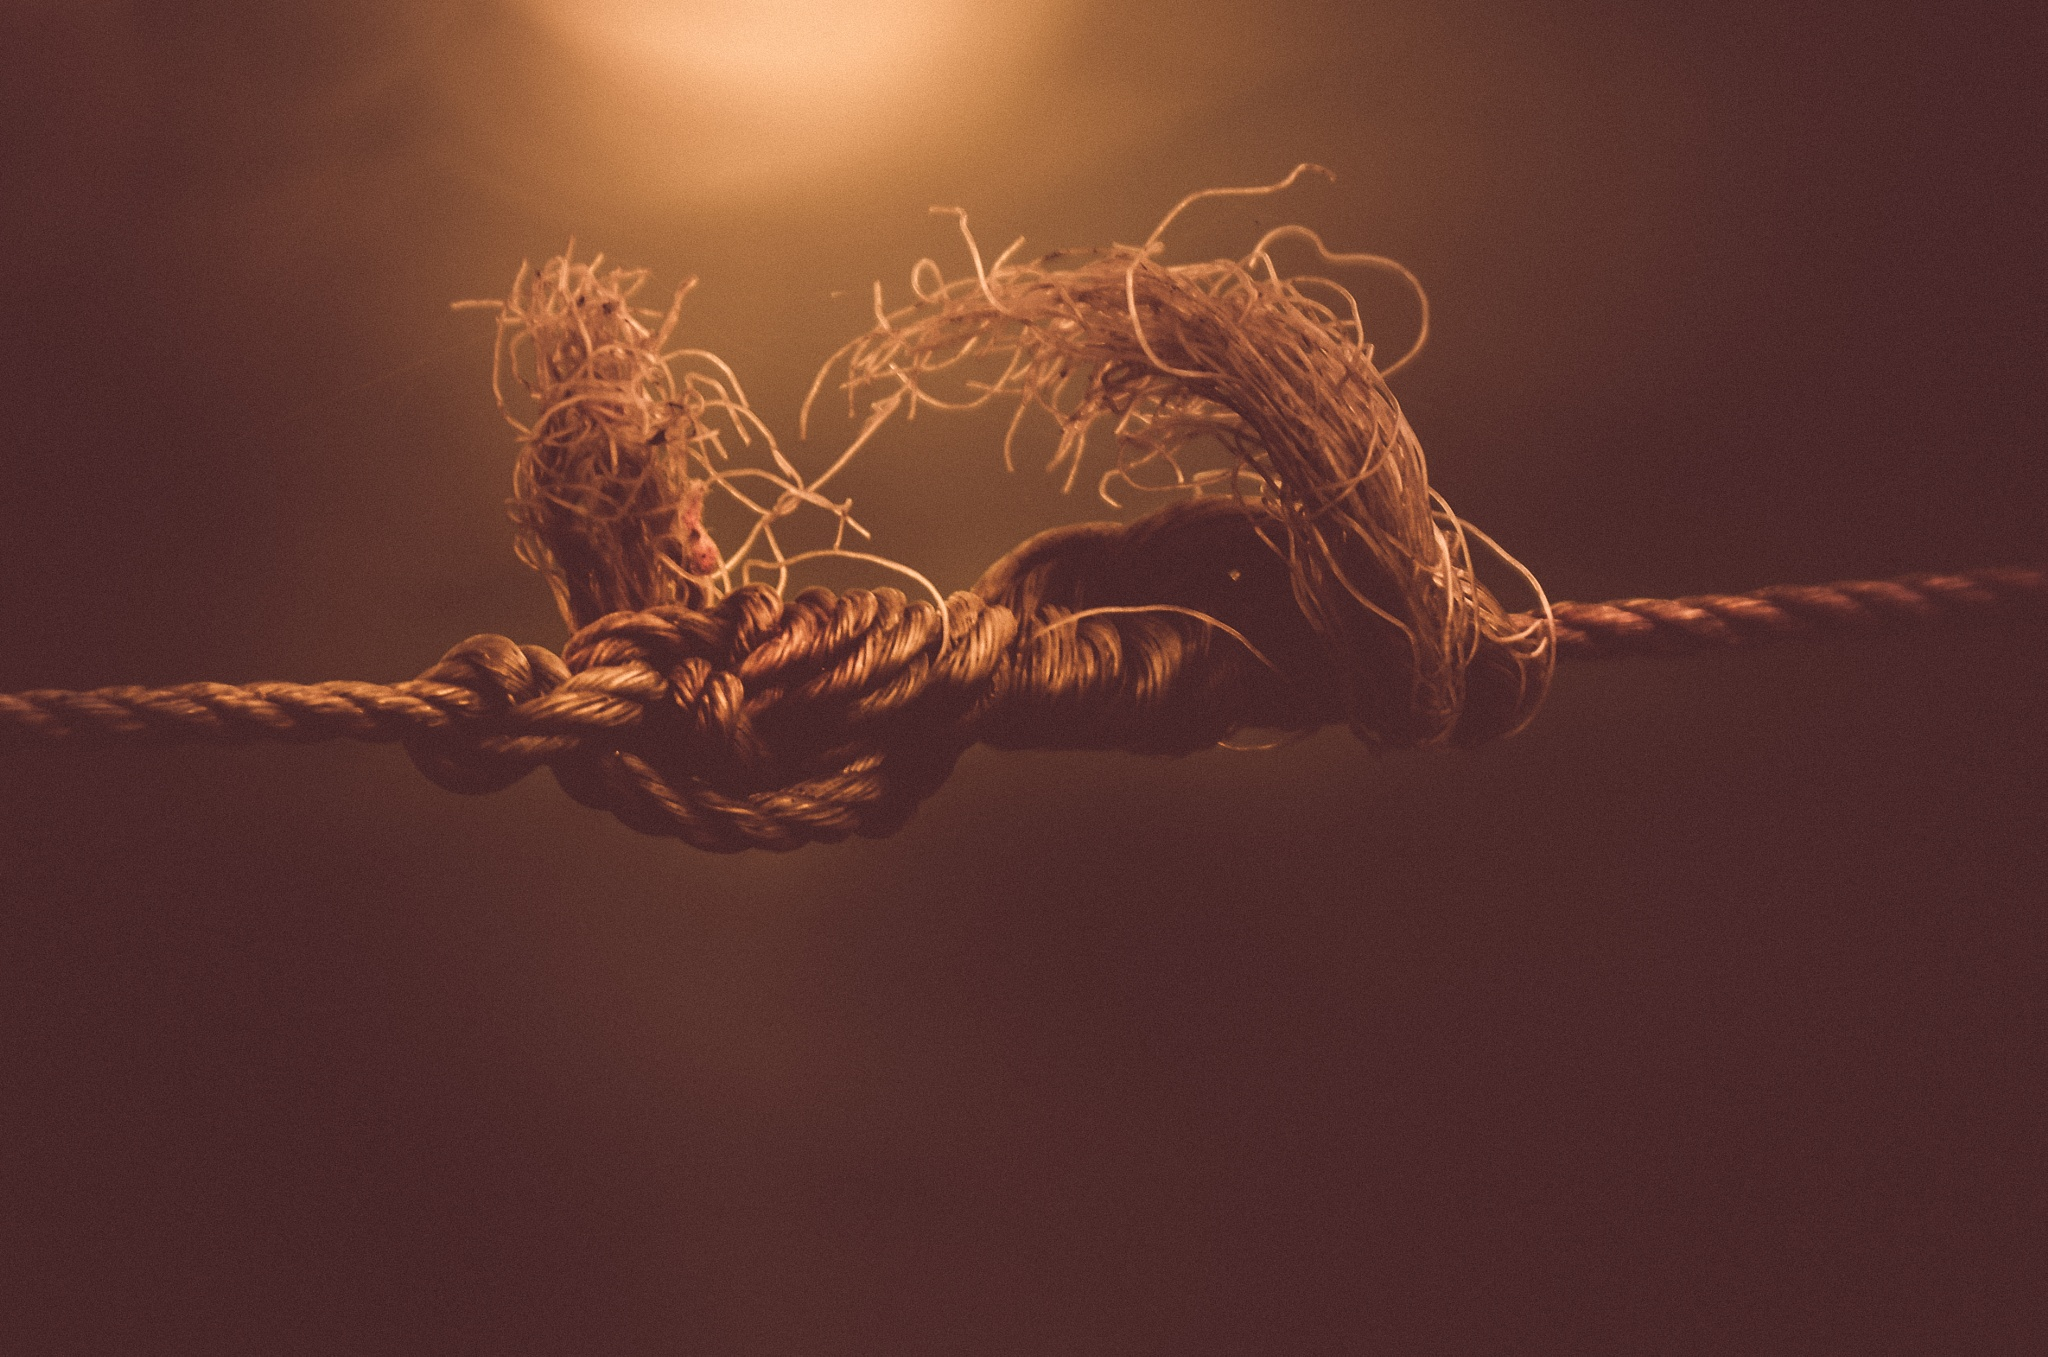 square knot by eagleeyes1717